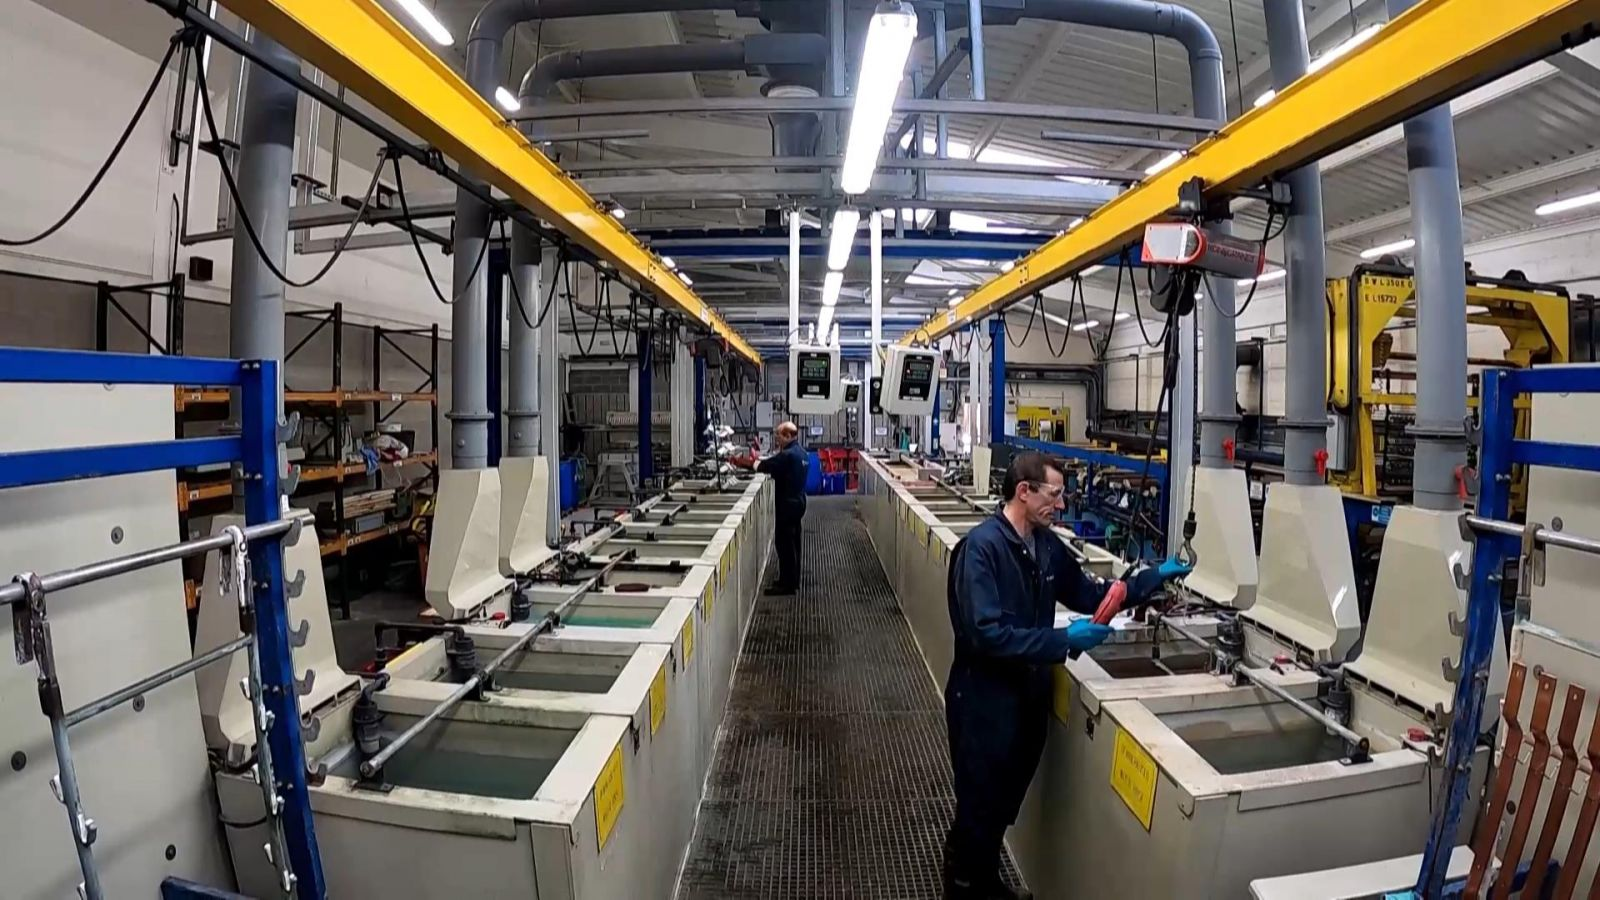 Specialists in sub-con electroplating. Experienced in-house electroplating services. HV Wooding has been Electroplating for many years.